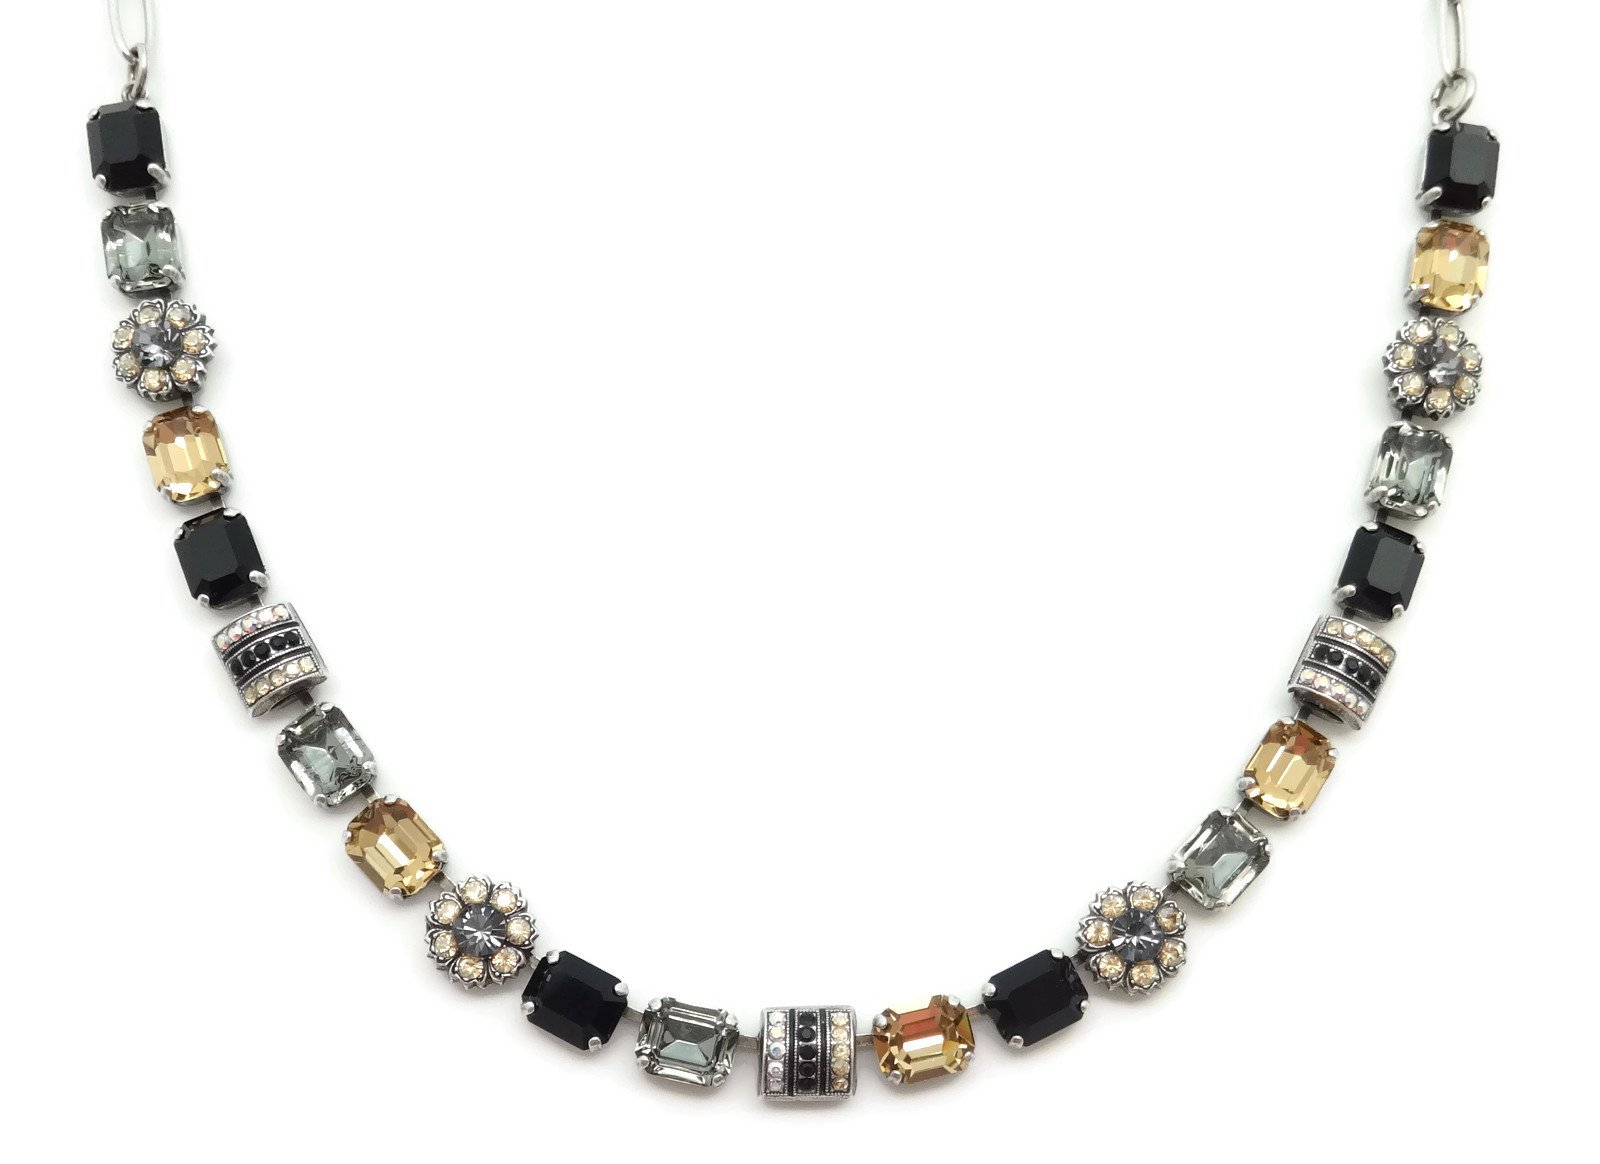 Mariana Swarovski Crystal Silver Plated Necklace Black & Brown Mix Rectangle Mosaic 1094 Odyssey Adeline